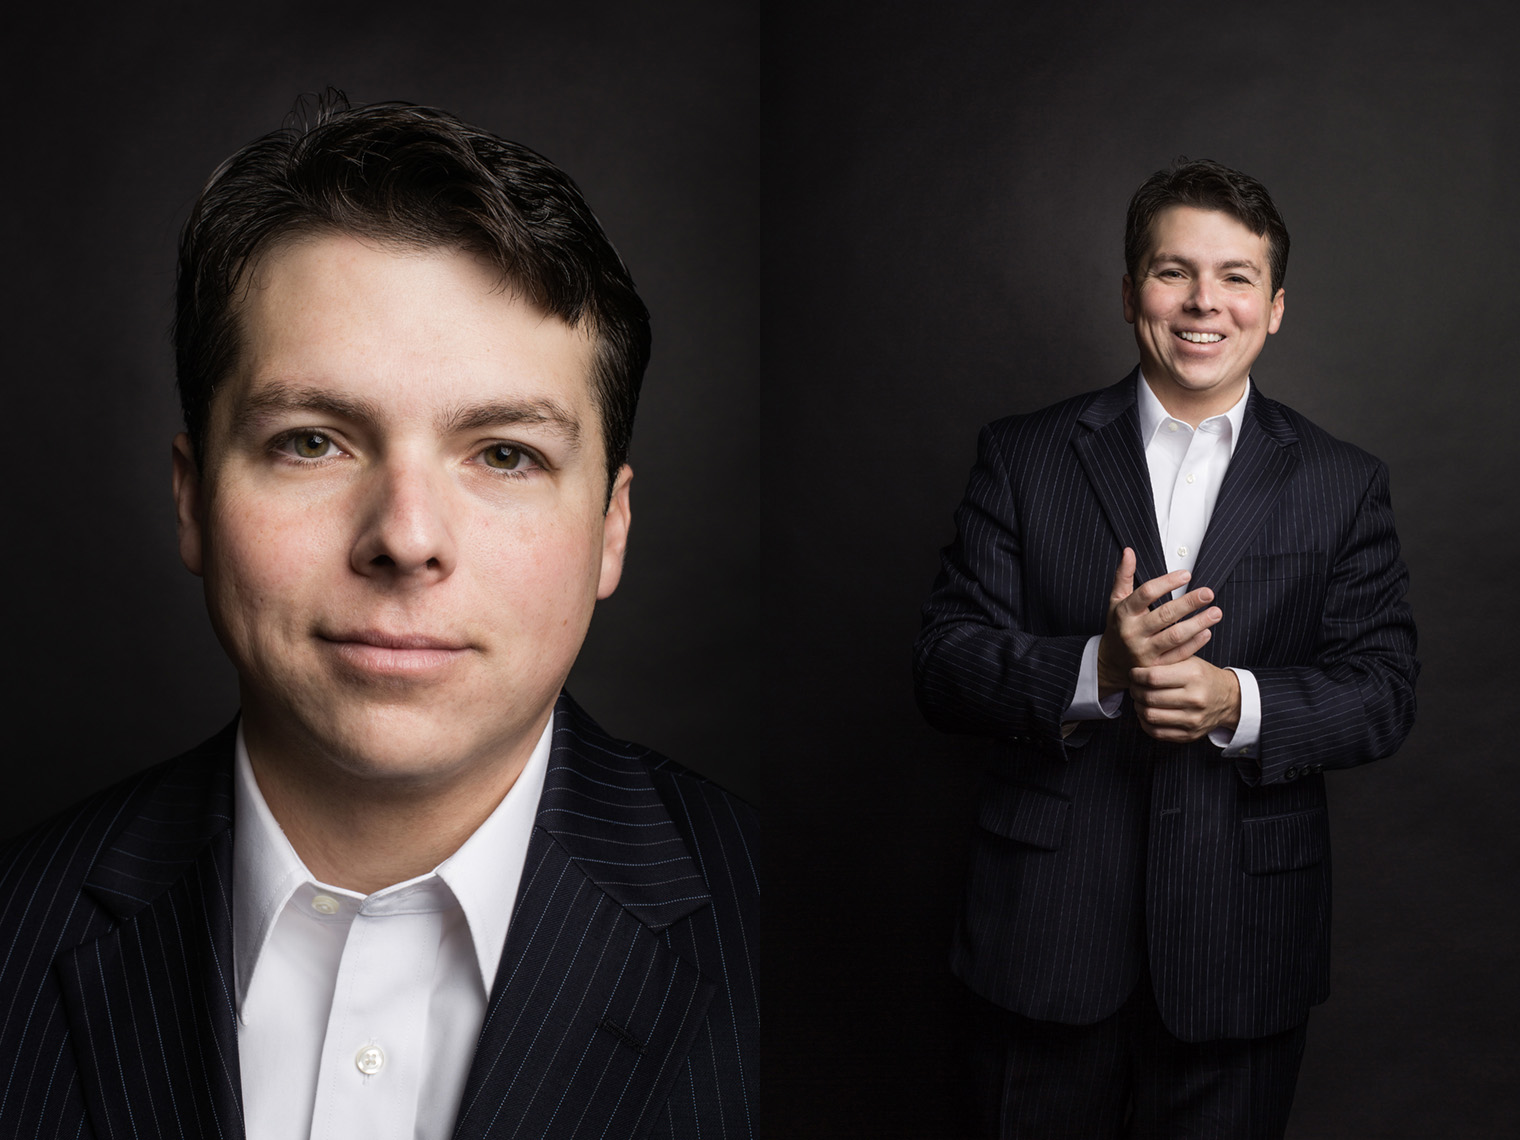 BRENDAN BOYLE, (PA 13TH, D) • Politico Magazine • Jason Grow Photography